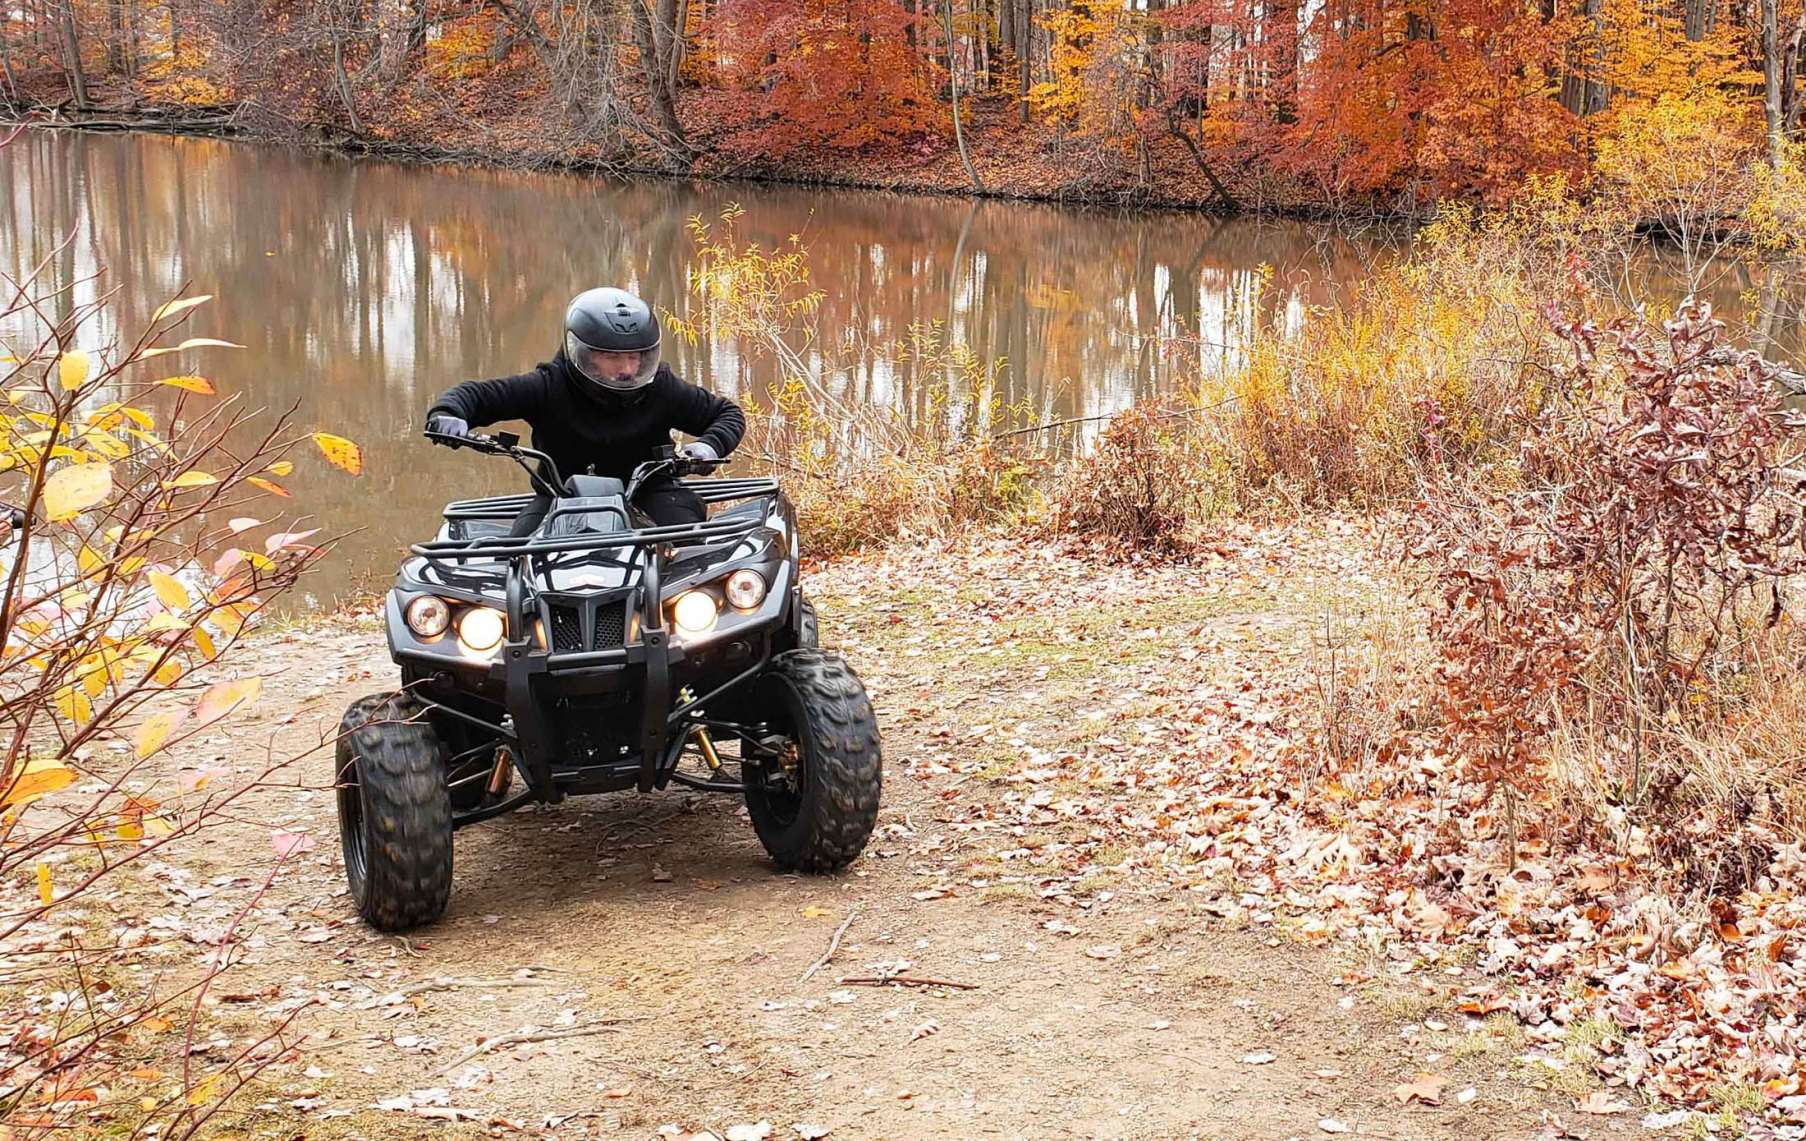 The DRR Stealth Electric ATV in action.